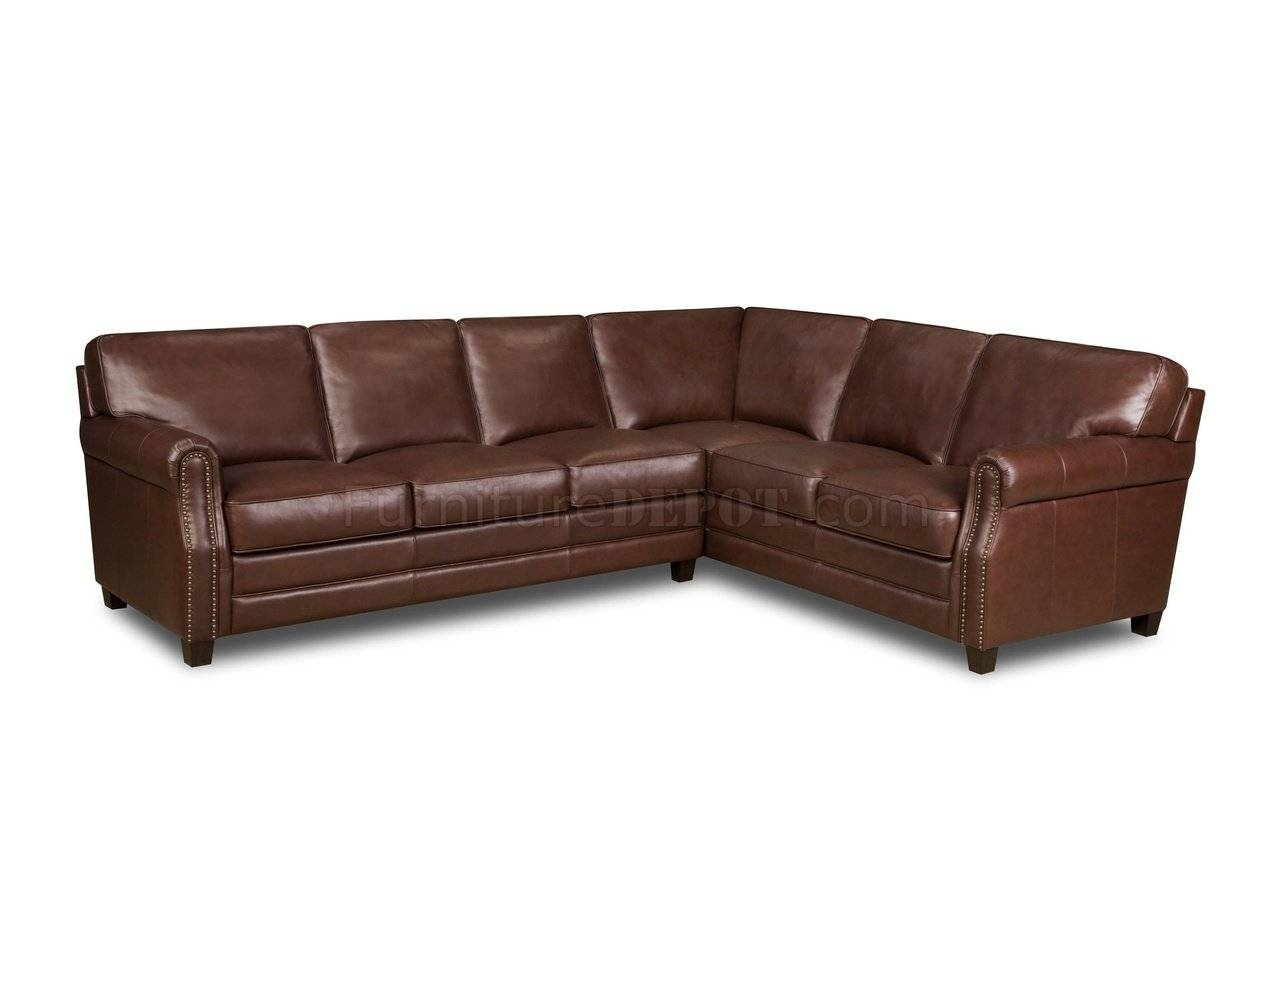 Brown Top Grain Italian Leather Traditional Sectional Sofa regarding Traditional Sectional Sofas (Image 2 of 25)